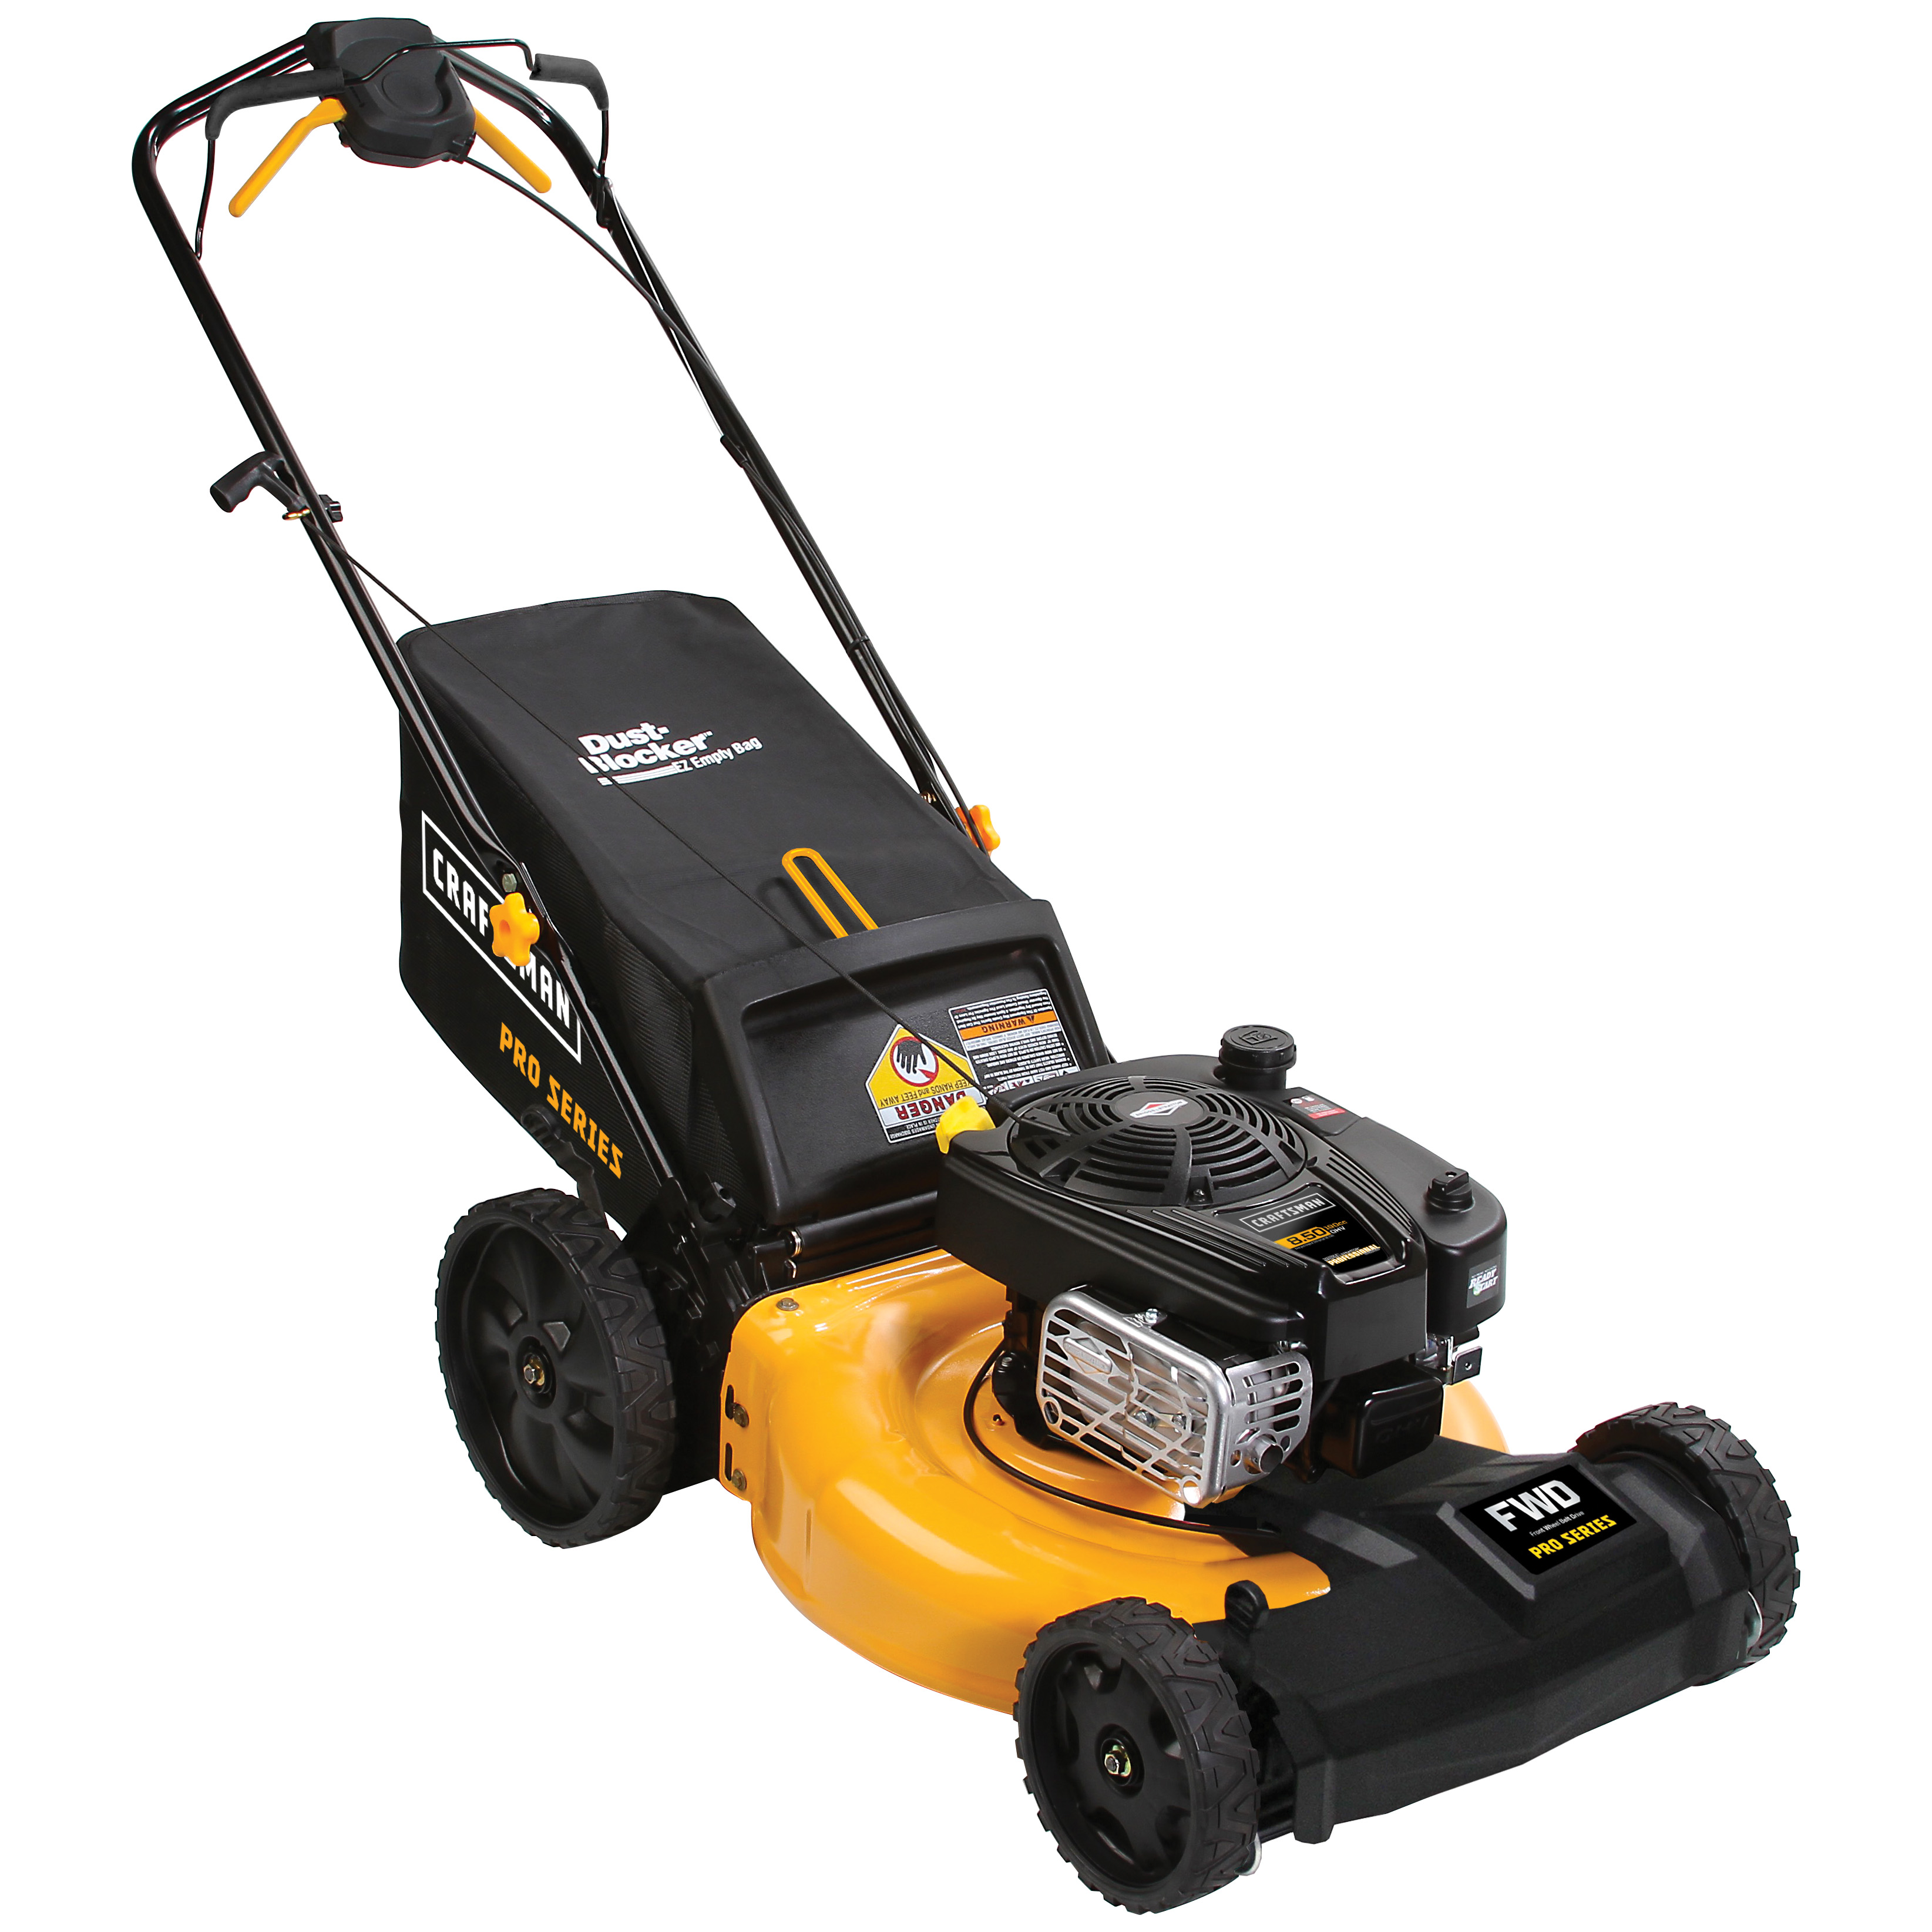 hight resolution of craftsman proseries 39760 21 190cc front wheel drive lawn mower